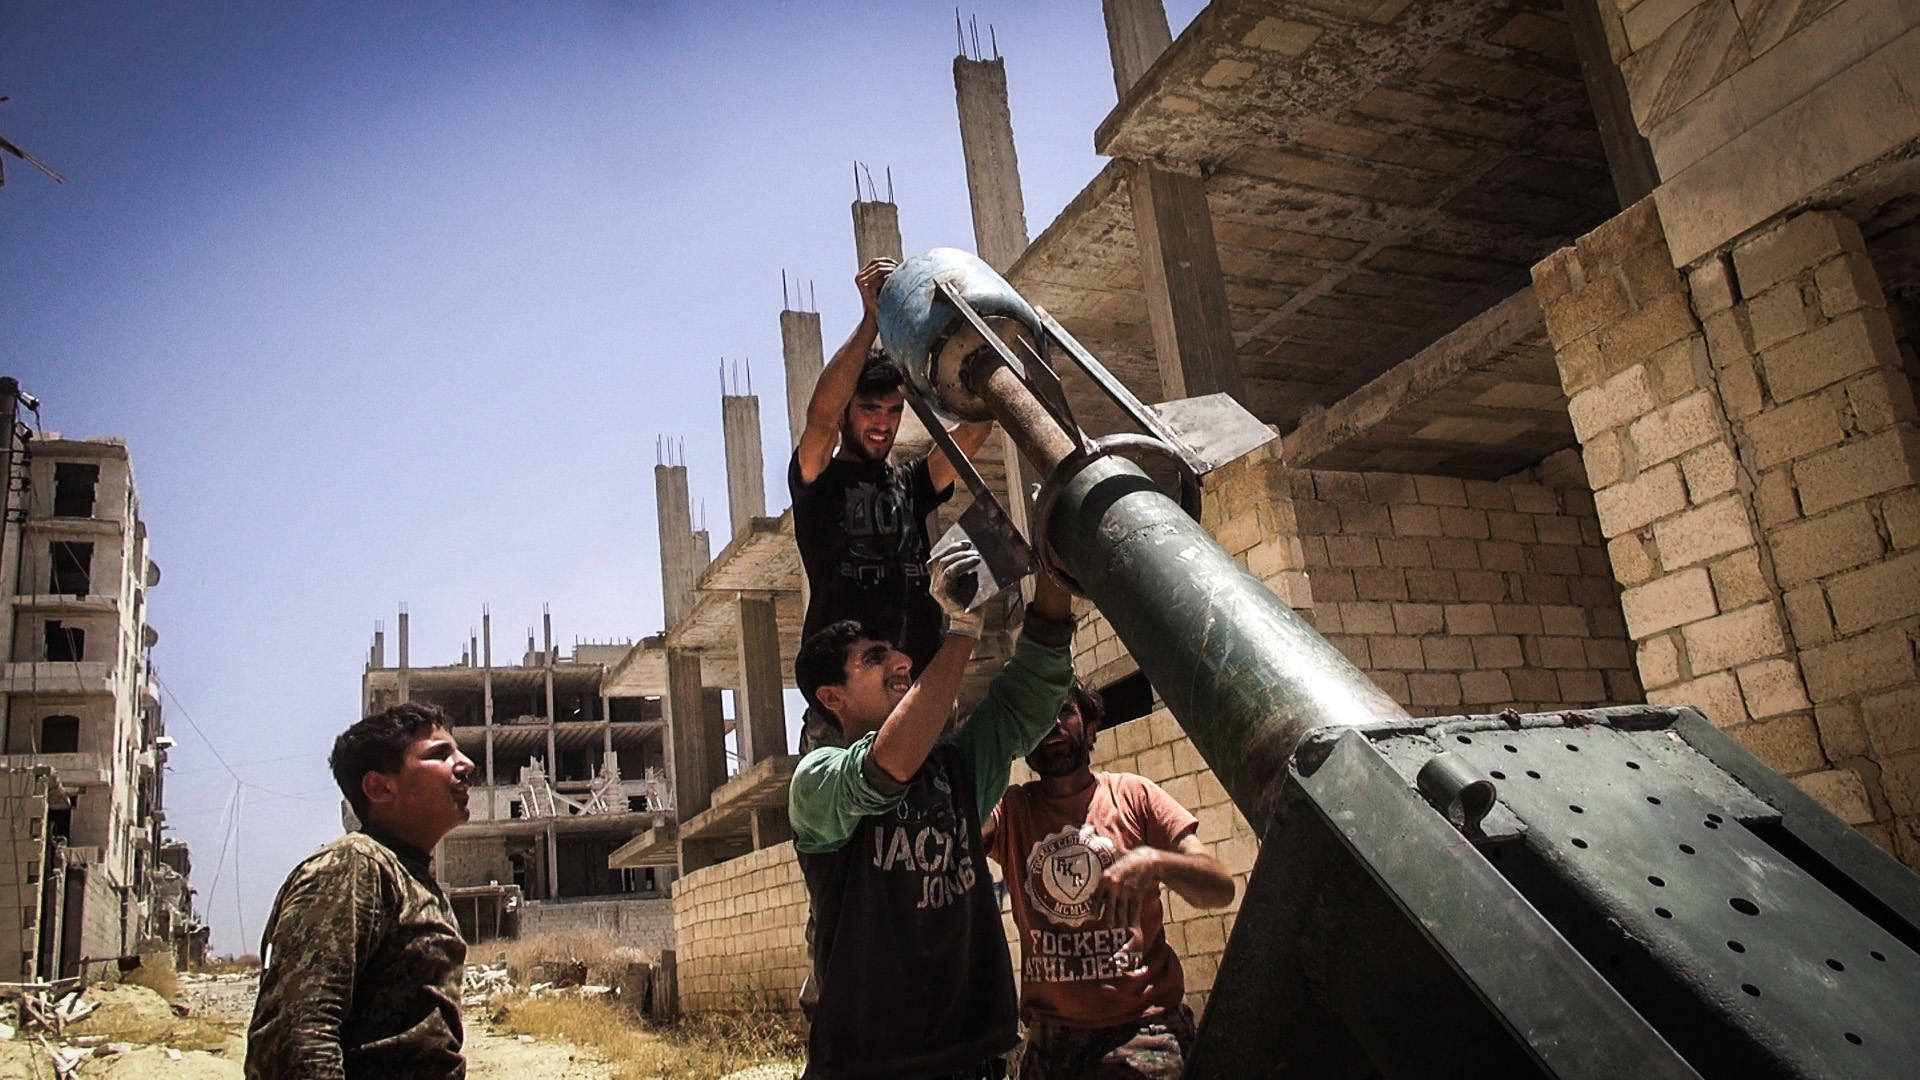 The FSA group Nour De Zenky use a home made missile system called the Janahem missile, welding together metal to a gas canister. They fought this day against the Assad regime in the Science Facility, taking over the location in several days.  © Jacob Simkin